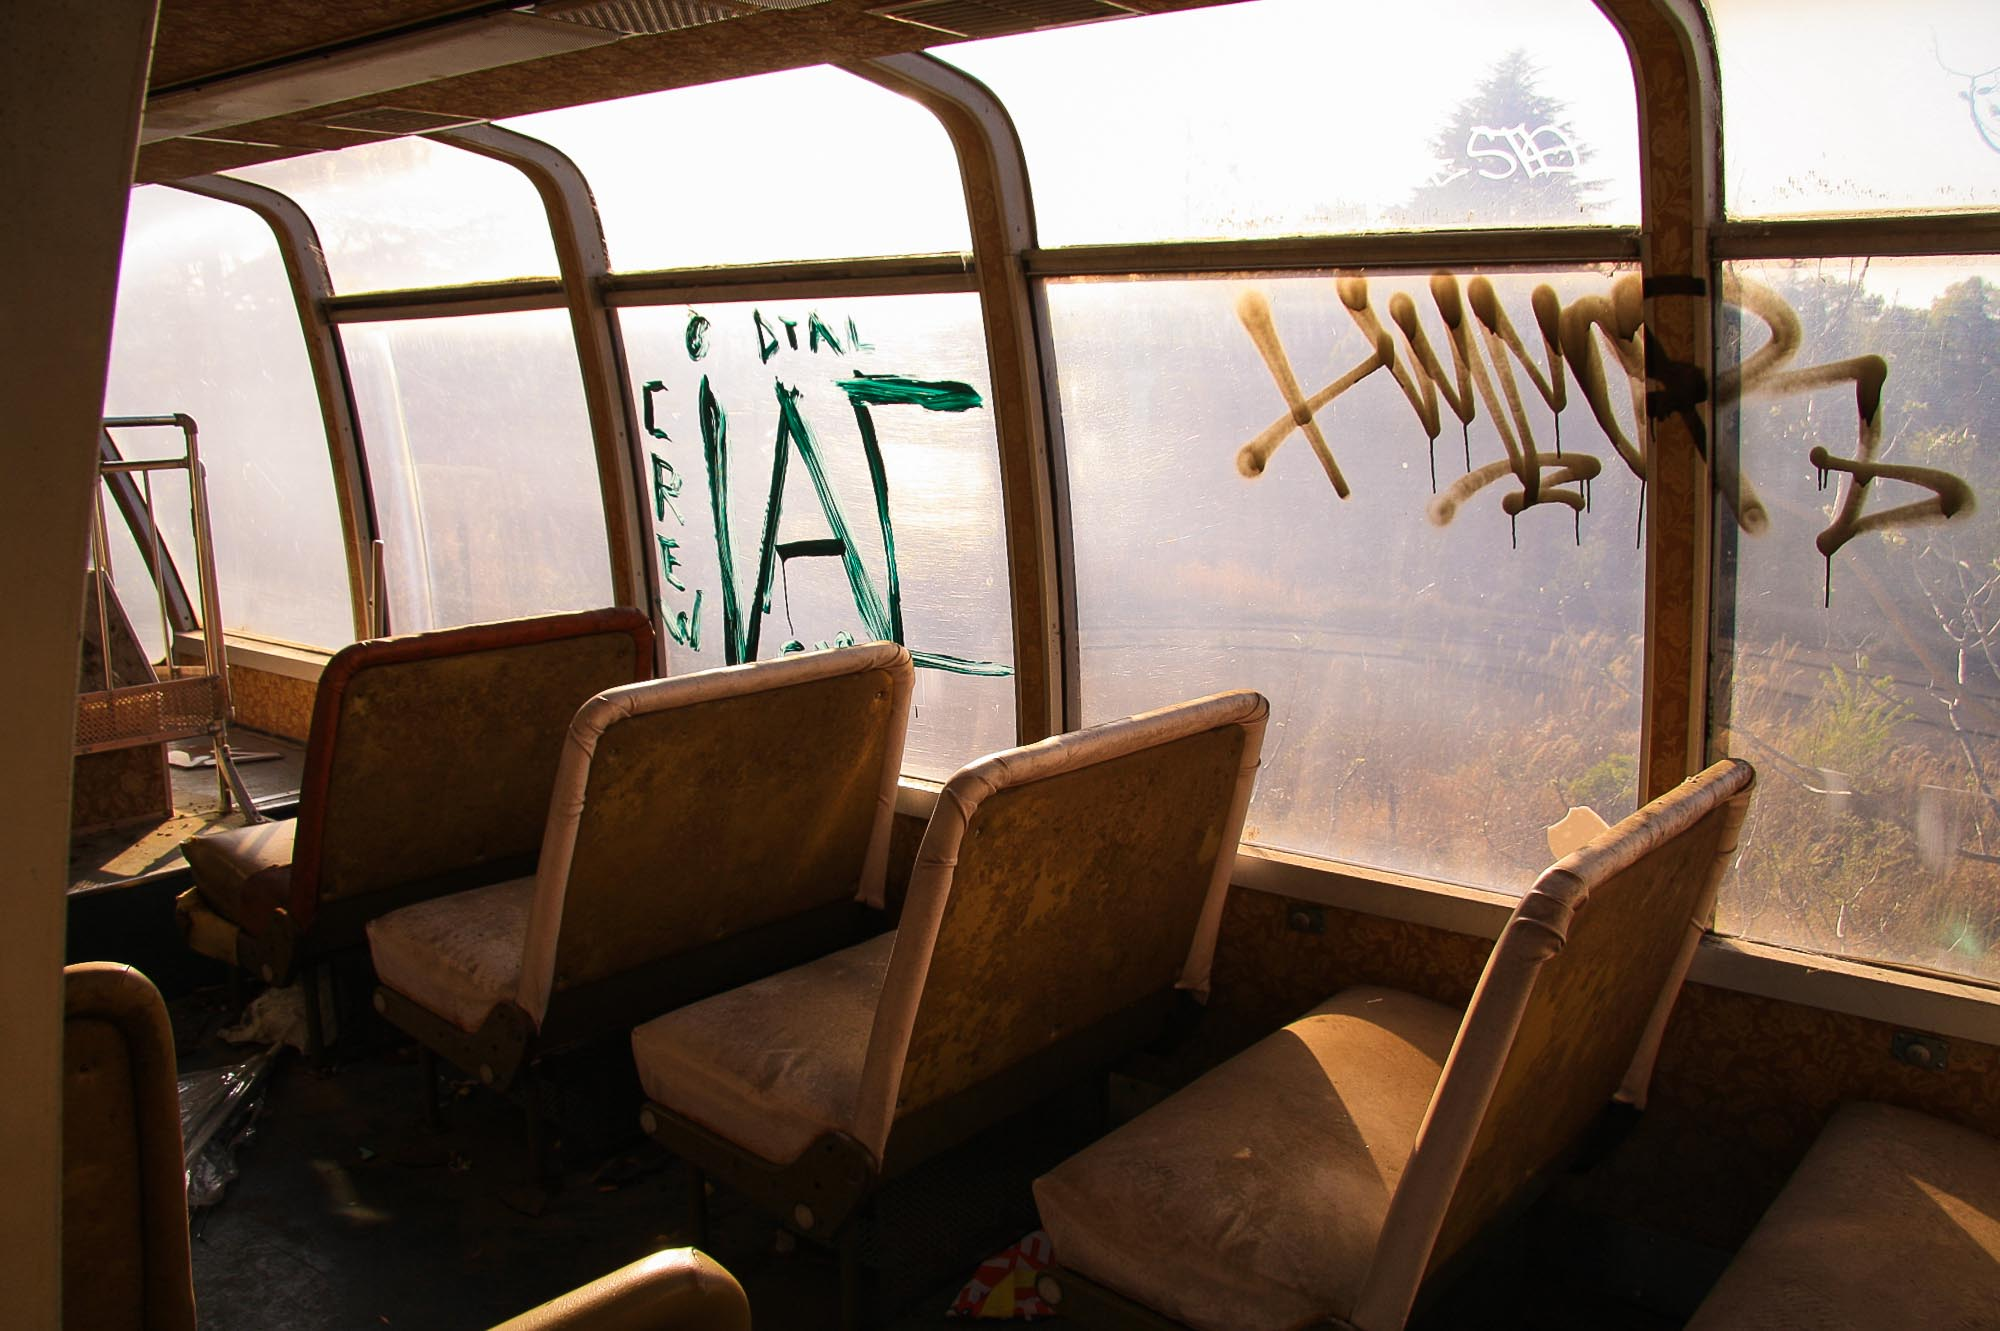 Graffiti on the outside of a bus in nara dreamland japan